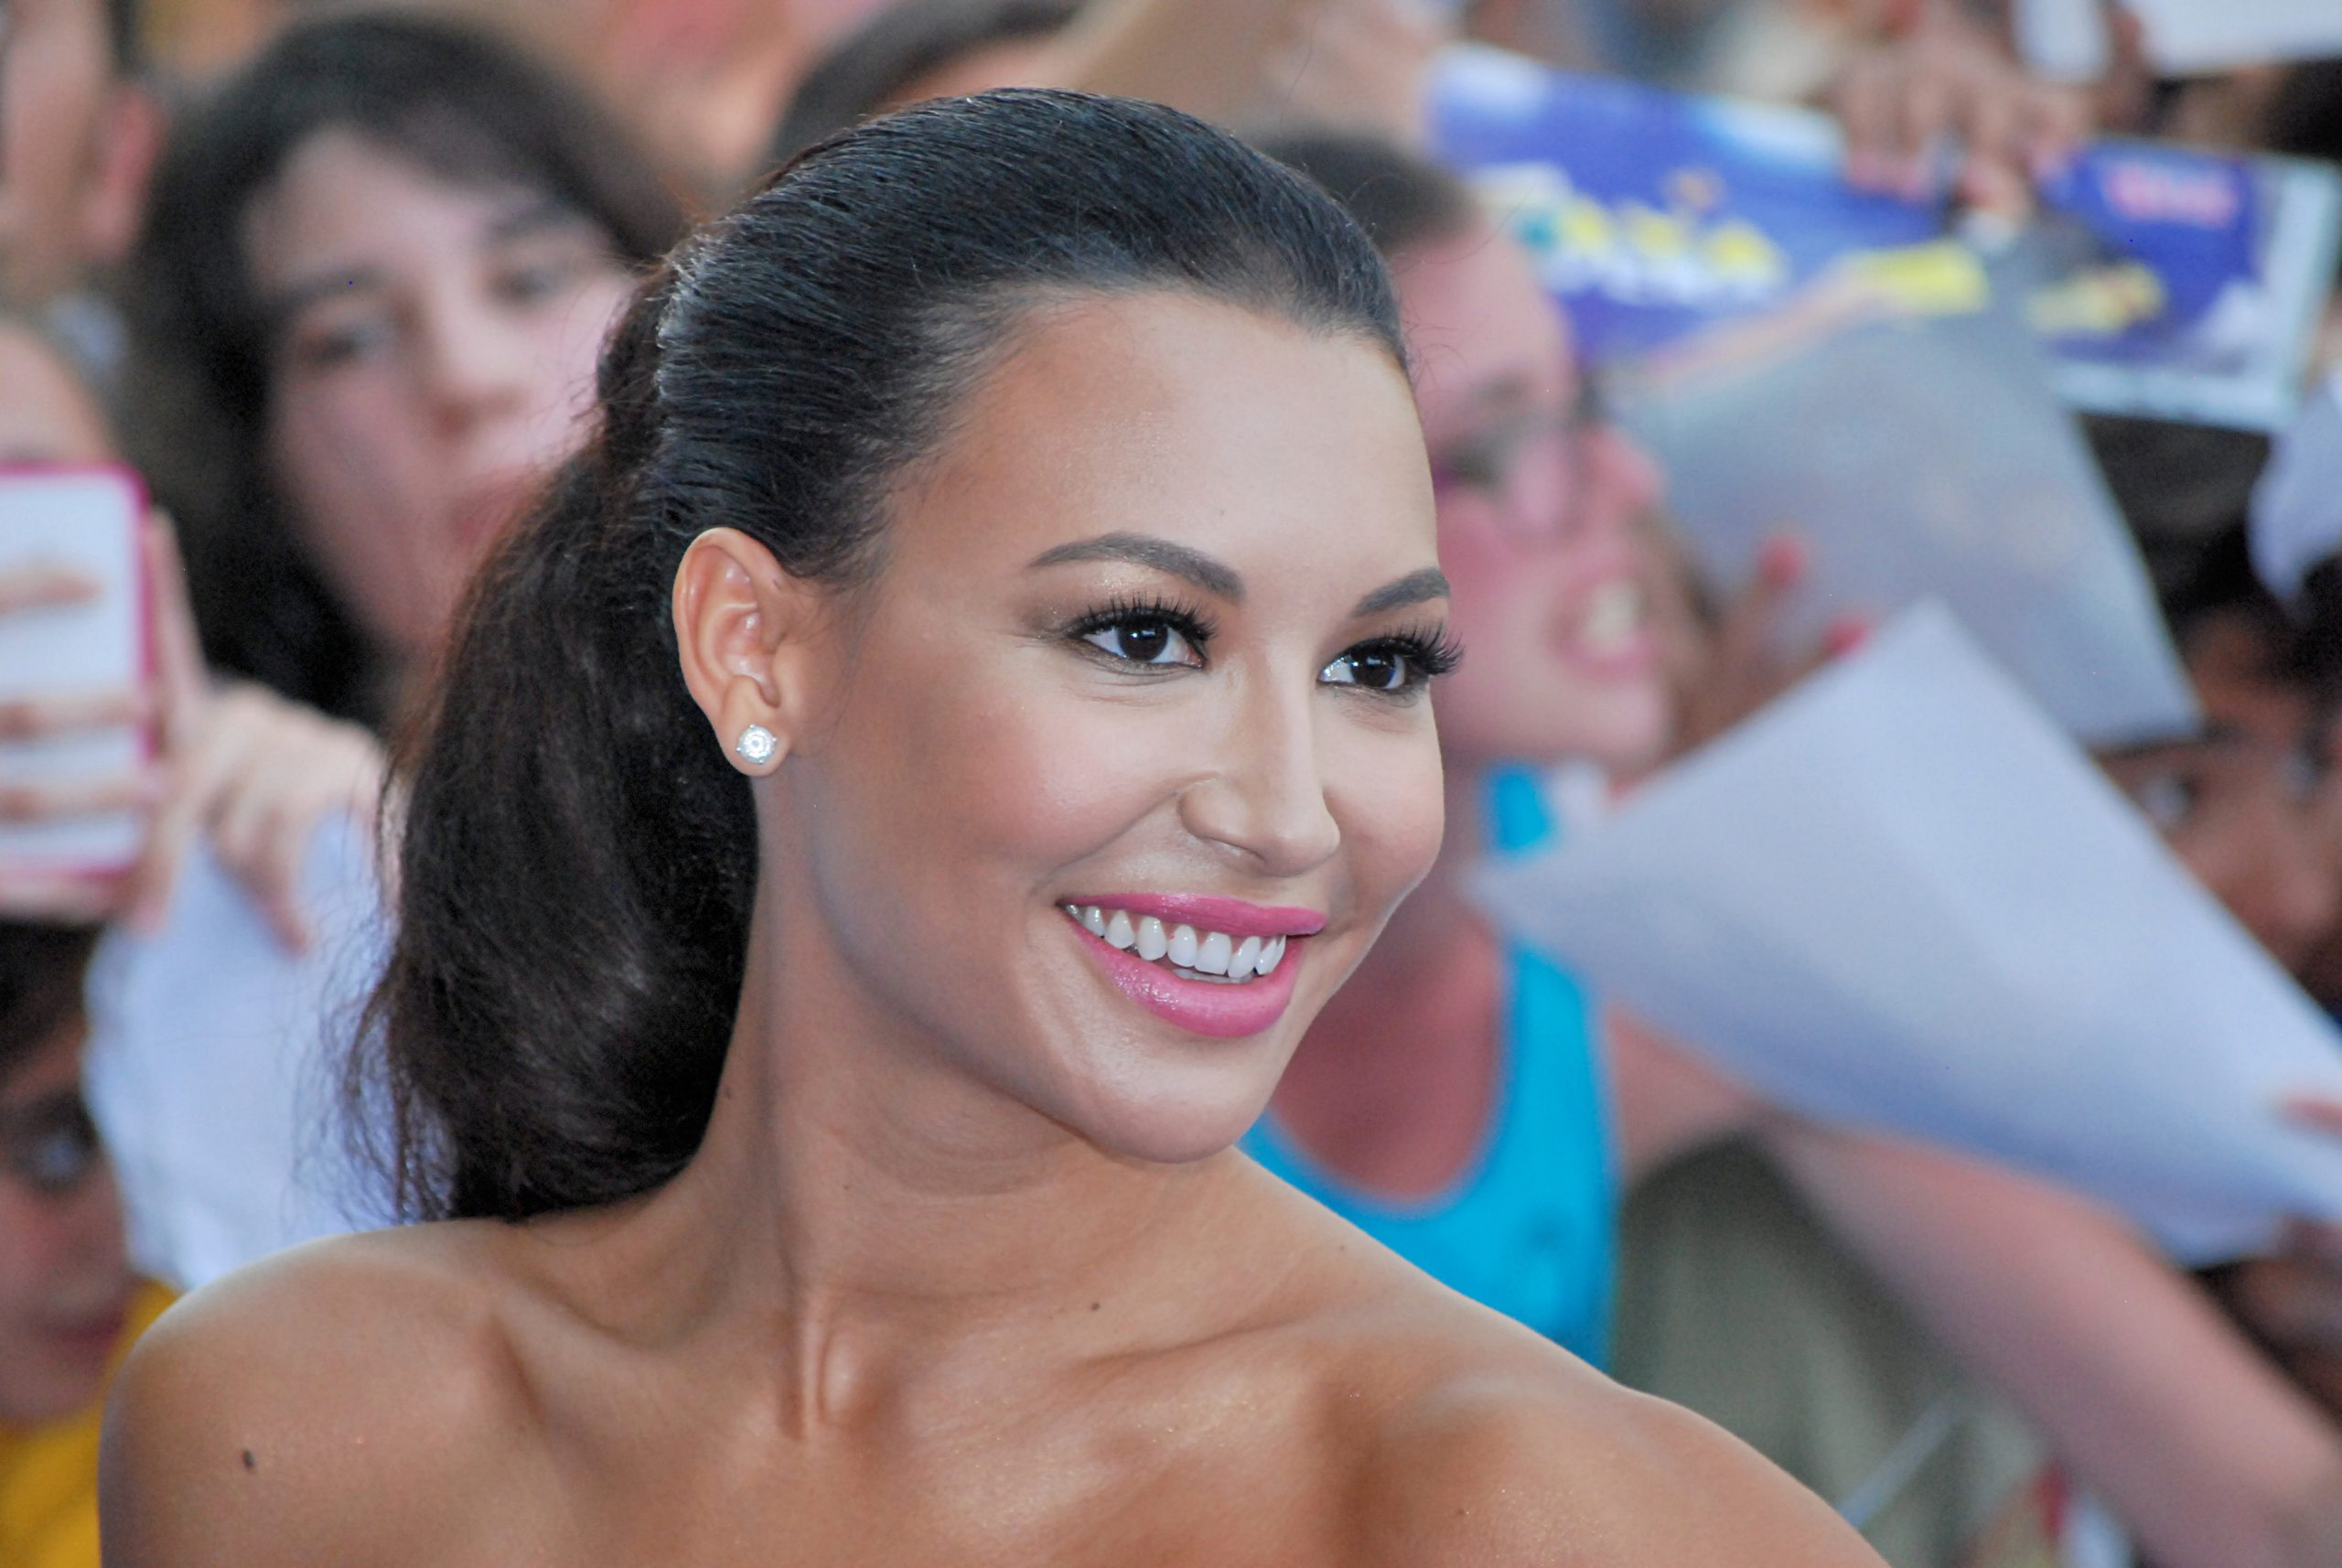 July 24, 2013 : Naya Rivera at Giffoni Film Festival